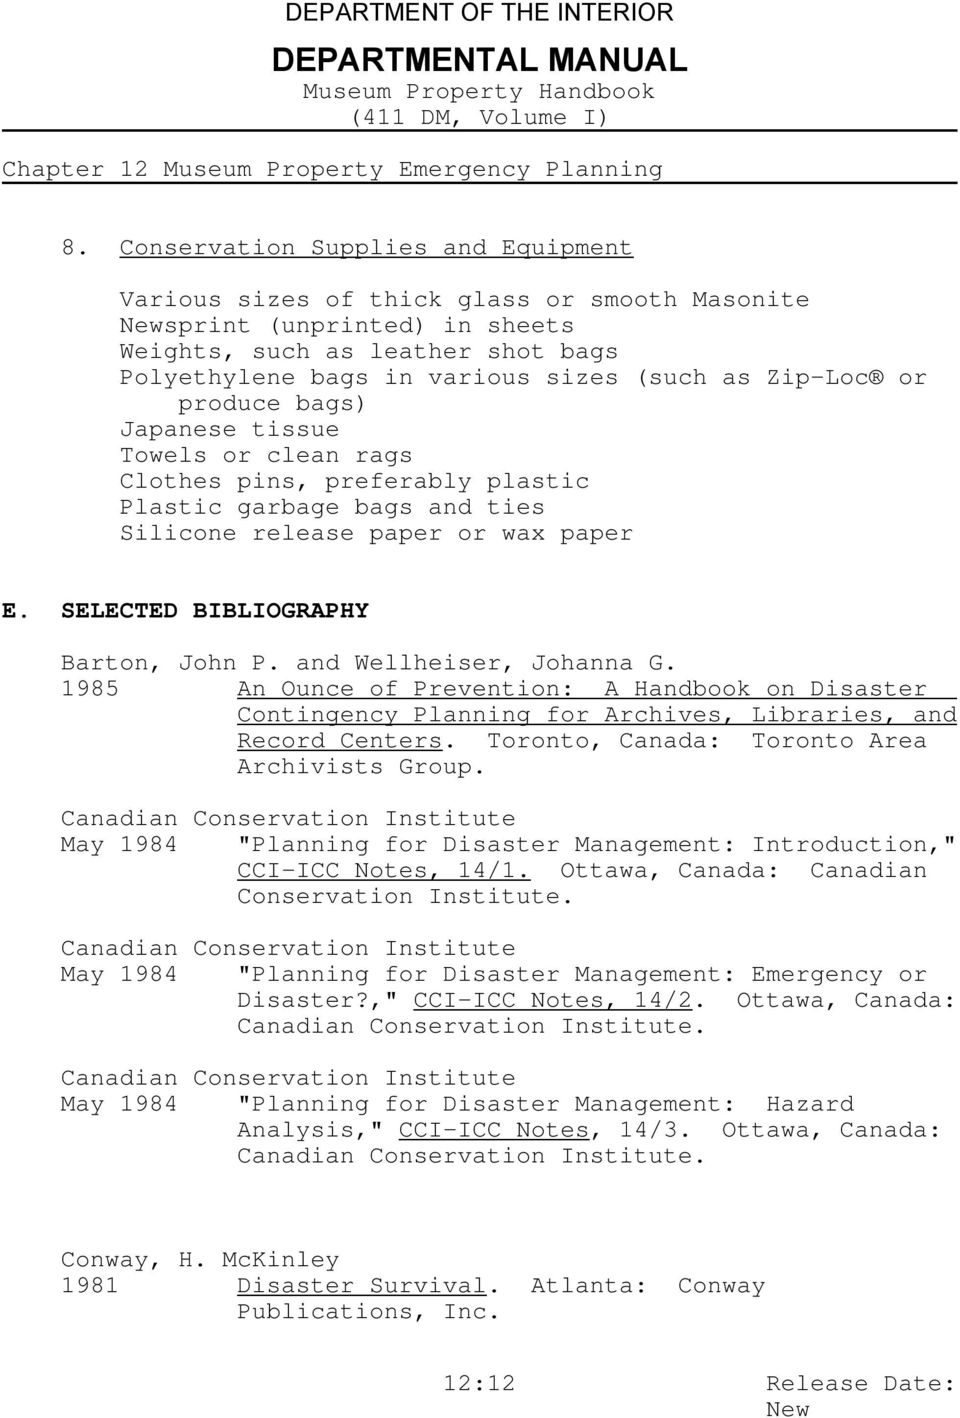 SELECTED BIBLIOGRAPHY Barton, John P. and Wellheiser, Johanna G. 1985 An Ounce of Prevention: A Handbook on Disaster Contingency Planning for Archives, Libraries, and Record Centers.